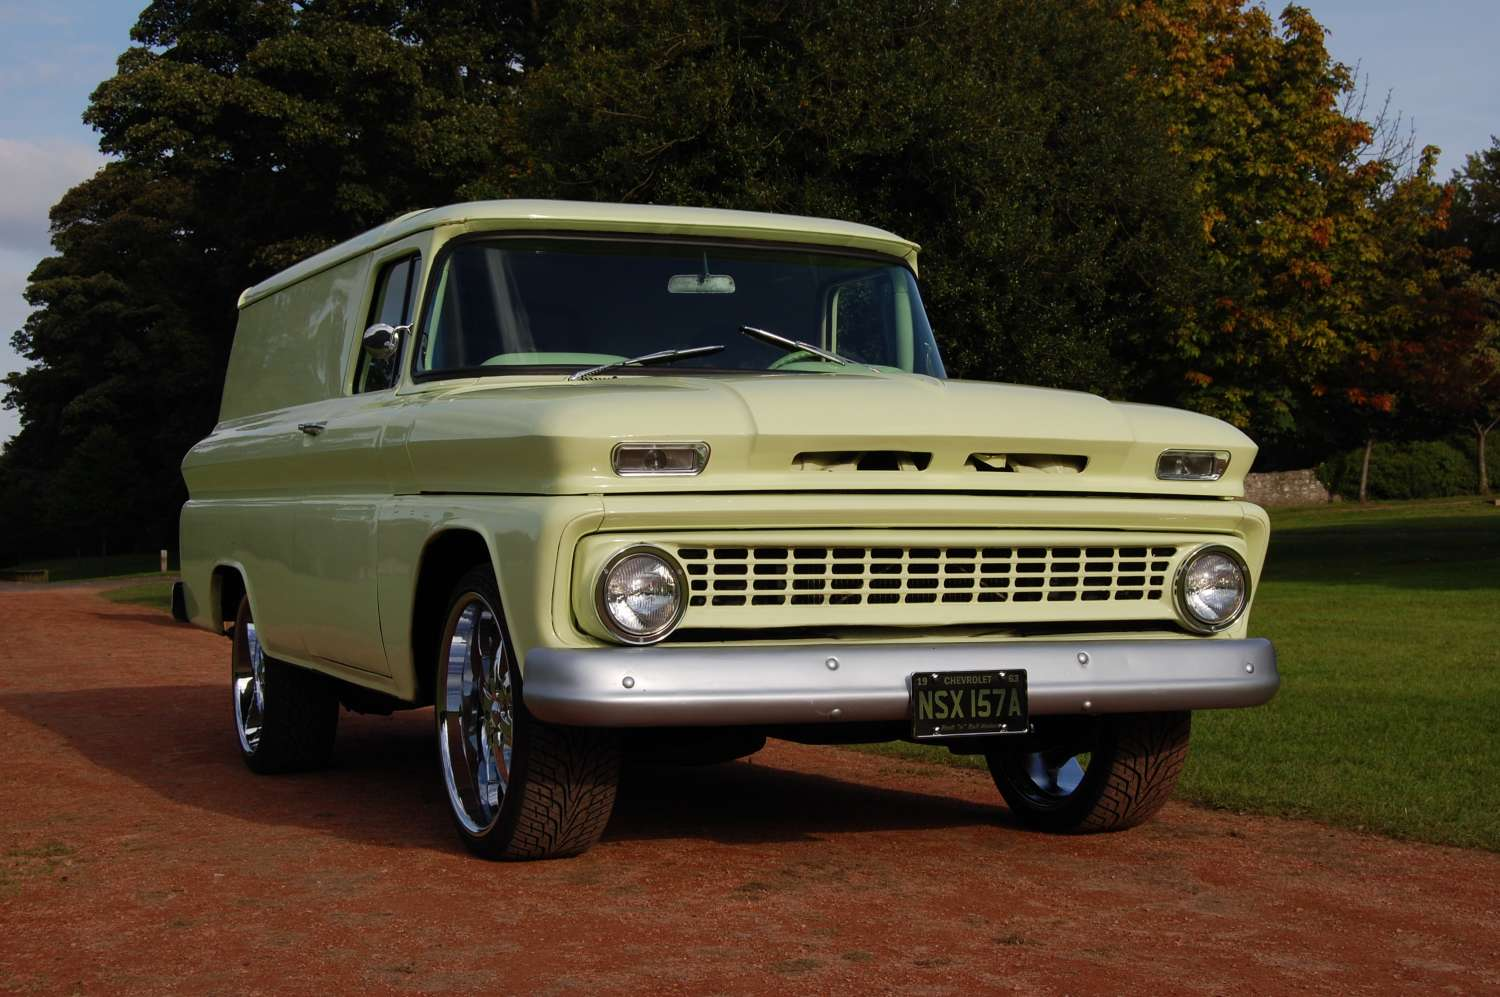 Truck 1963 chevy panel truck for sale : 1963 Chevrolet Chevy C-10 panel van truck for sale